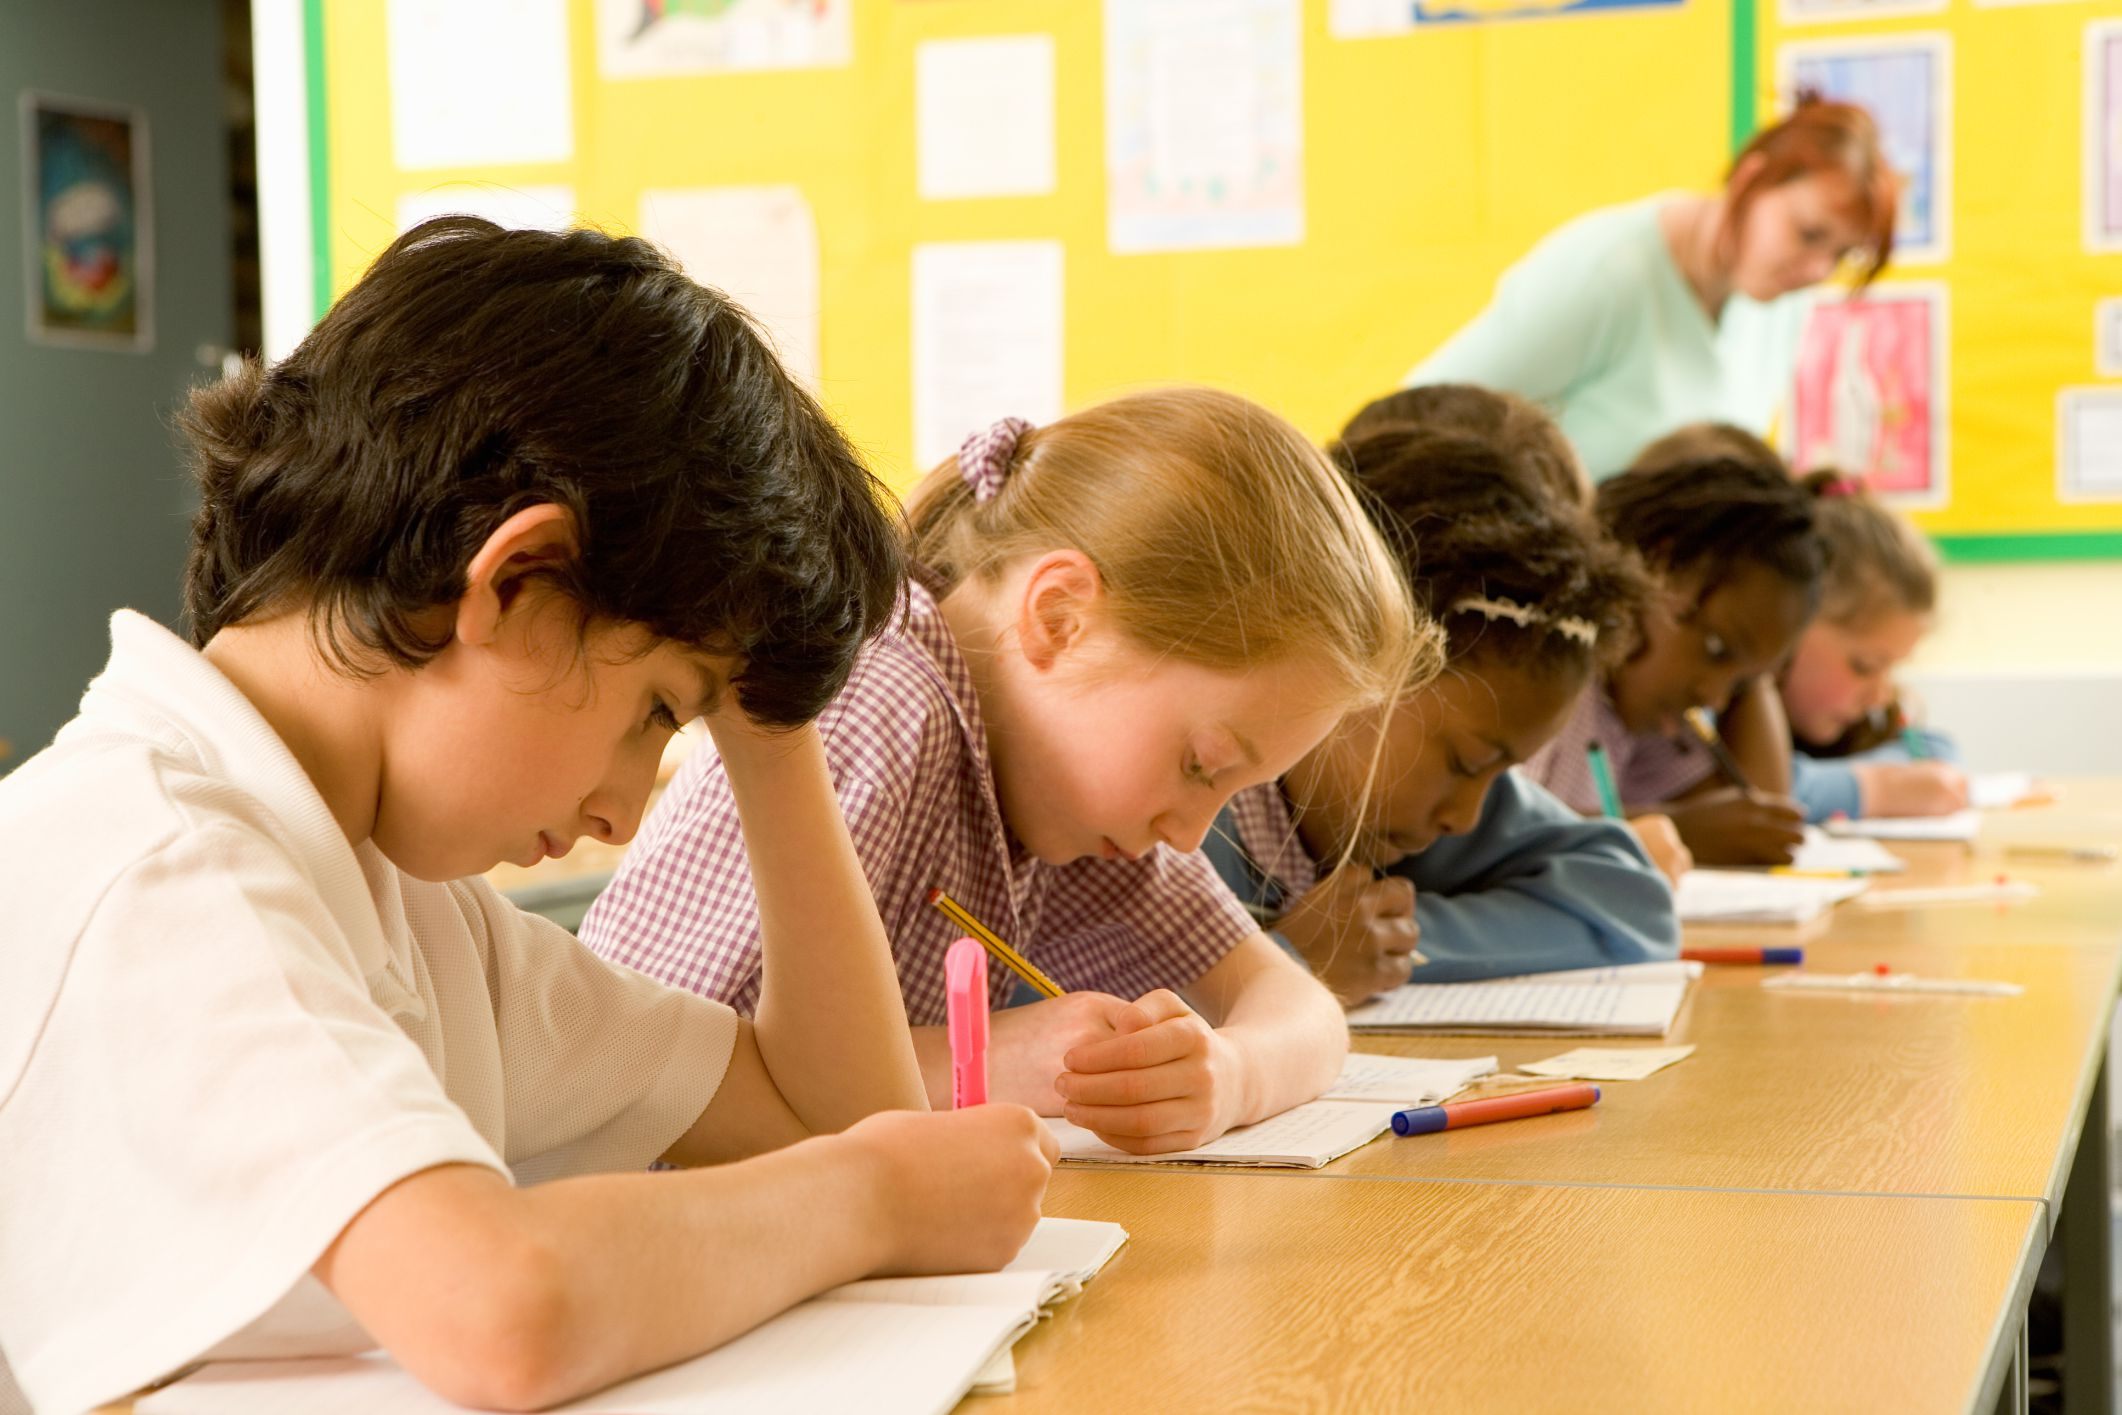 How To Turn A Worksheet Into An Engaging Activity